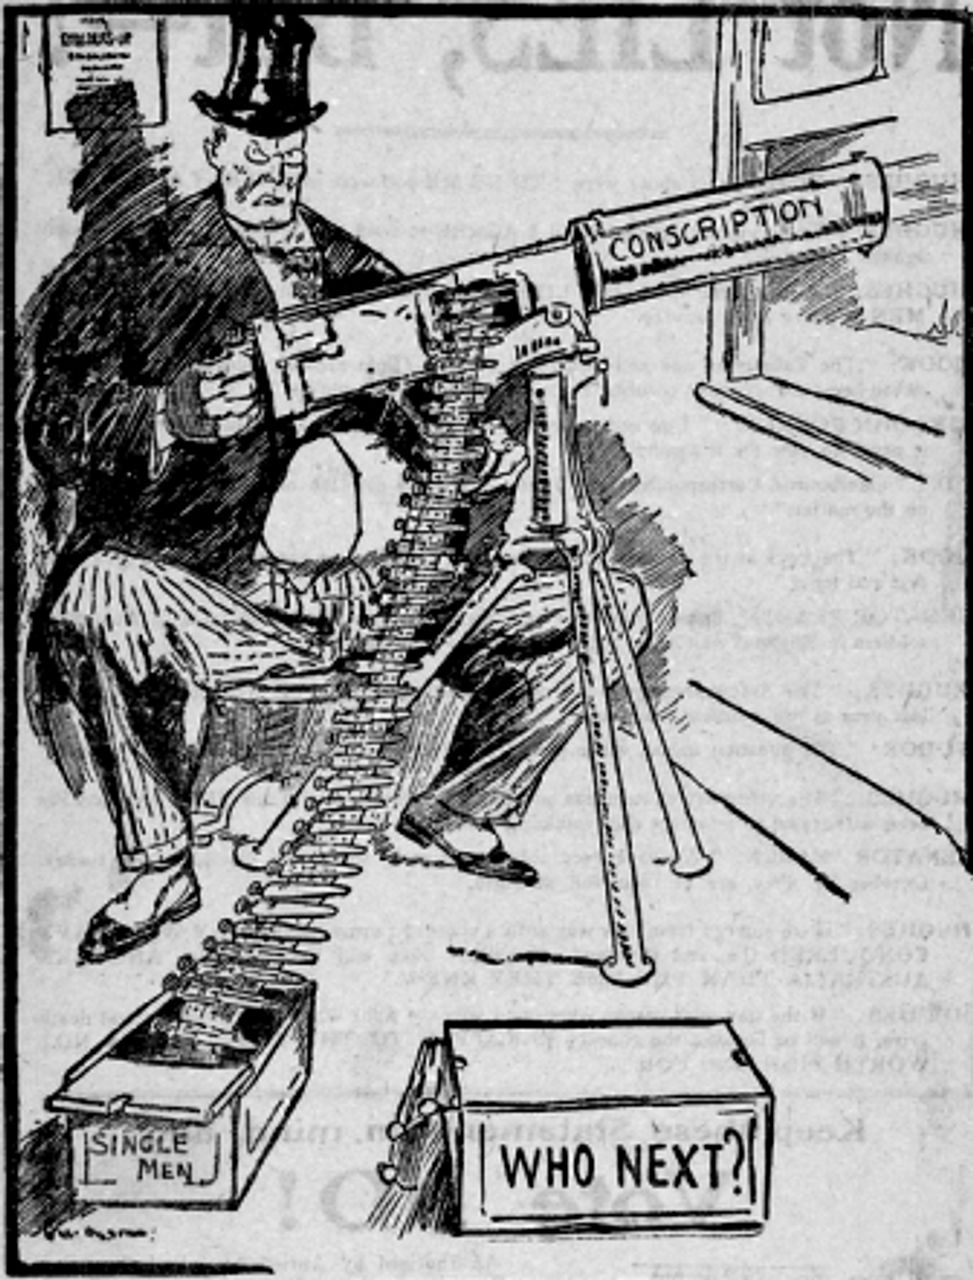 Anti-conscription cartoon (RC00339 image courtesy Australian War Memorial)